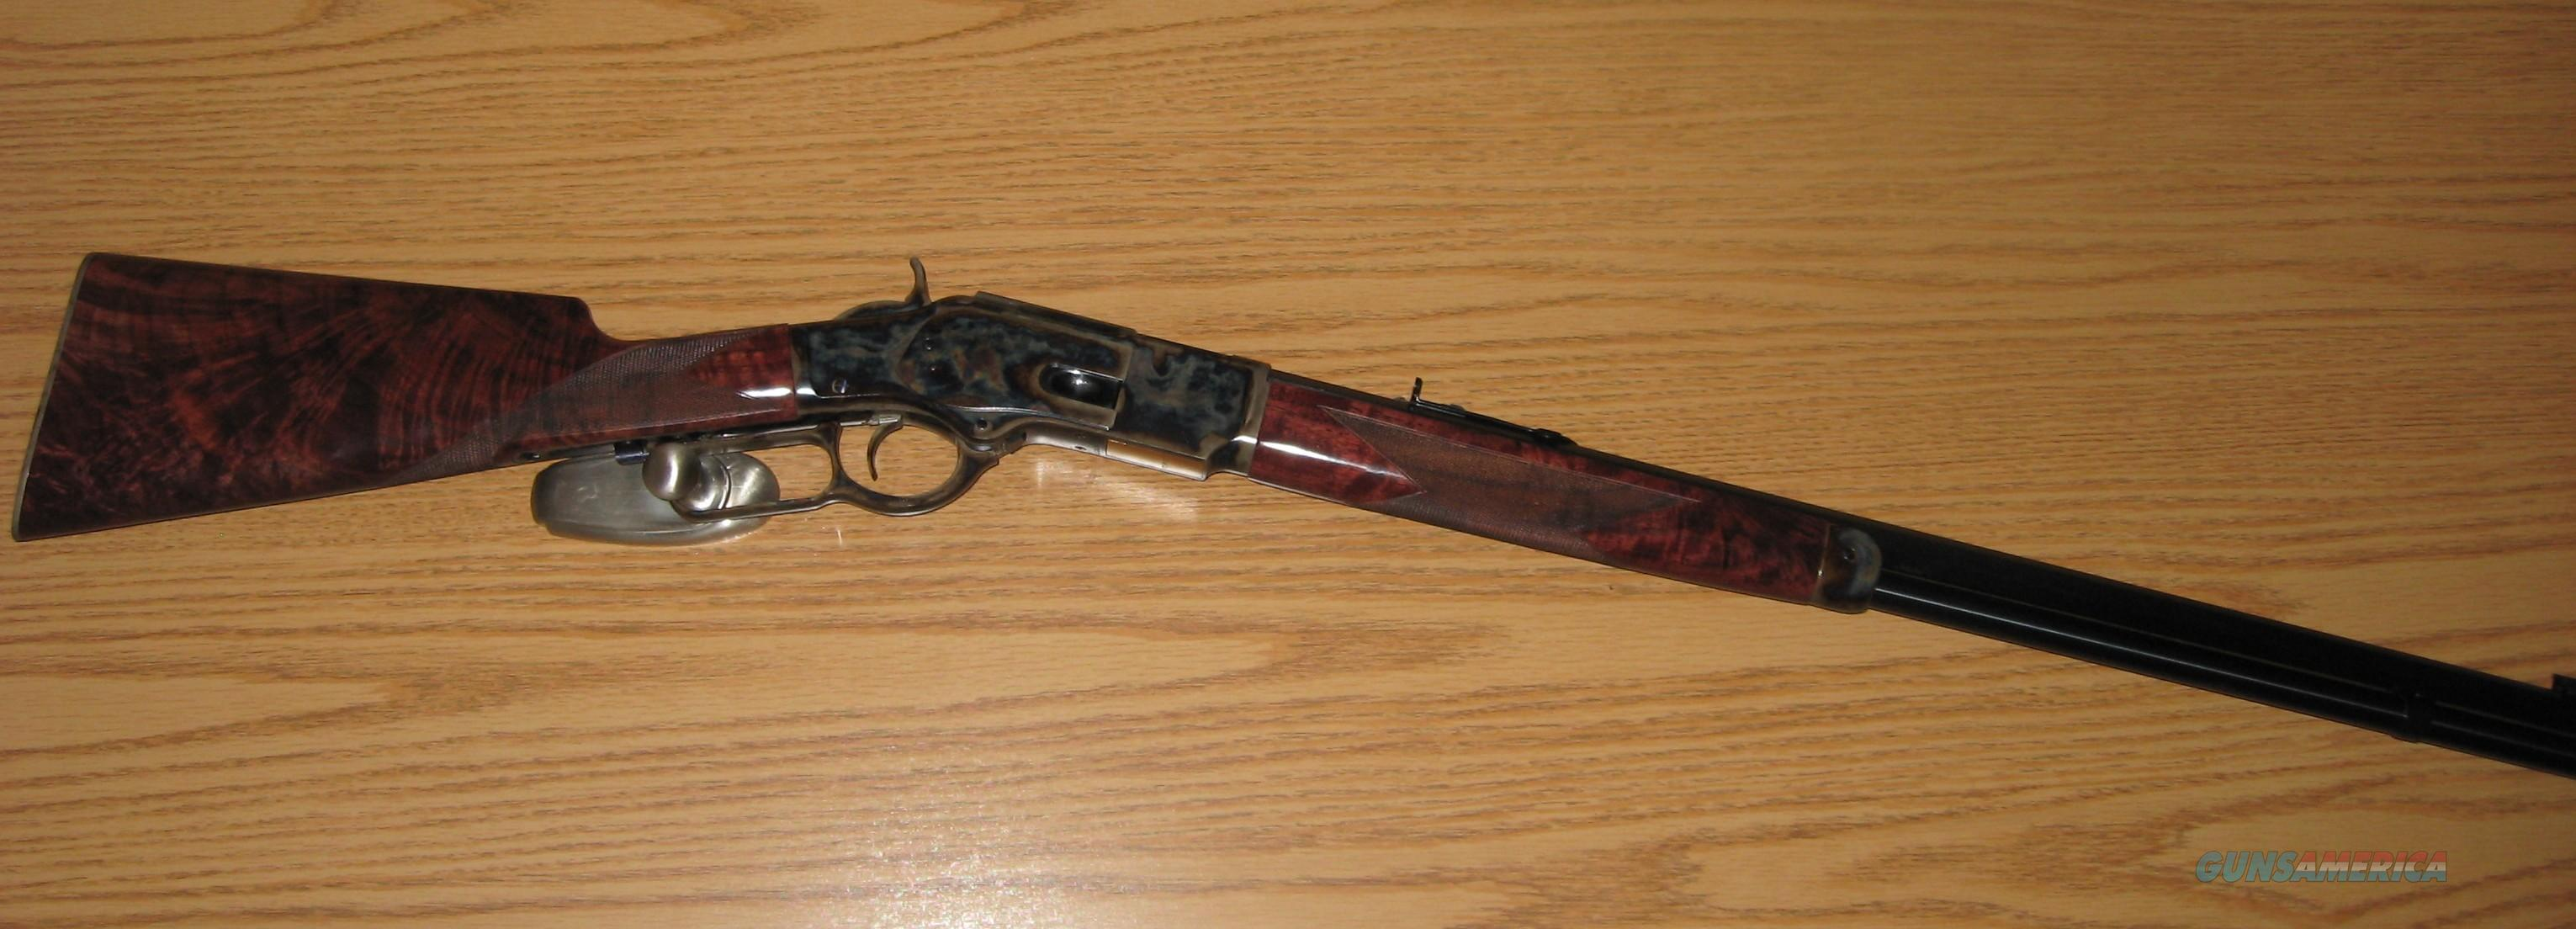 navy arms winchester made 1873 rifle for sale